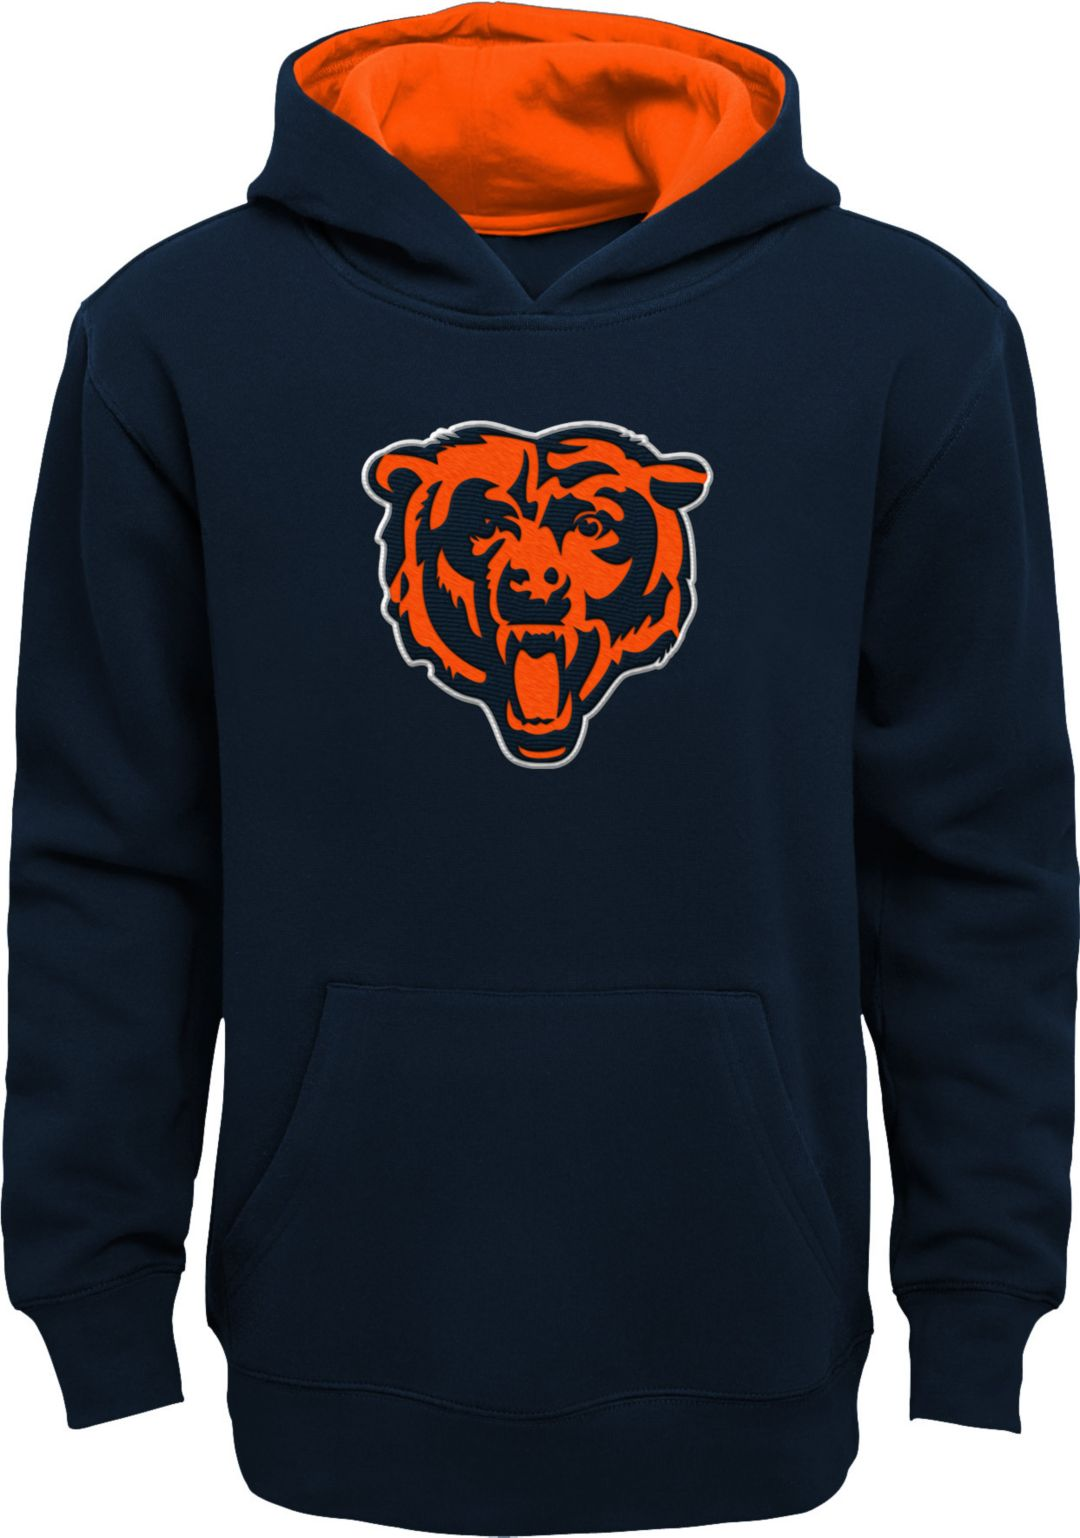 competitive price 1eaf4 ac29a NFL Team Apparel Youth Chicago Bears Prime Navy Pullover Hoodie